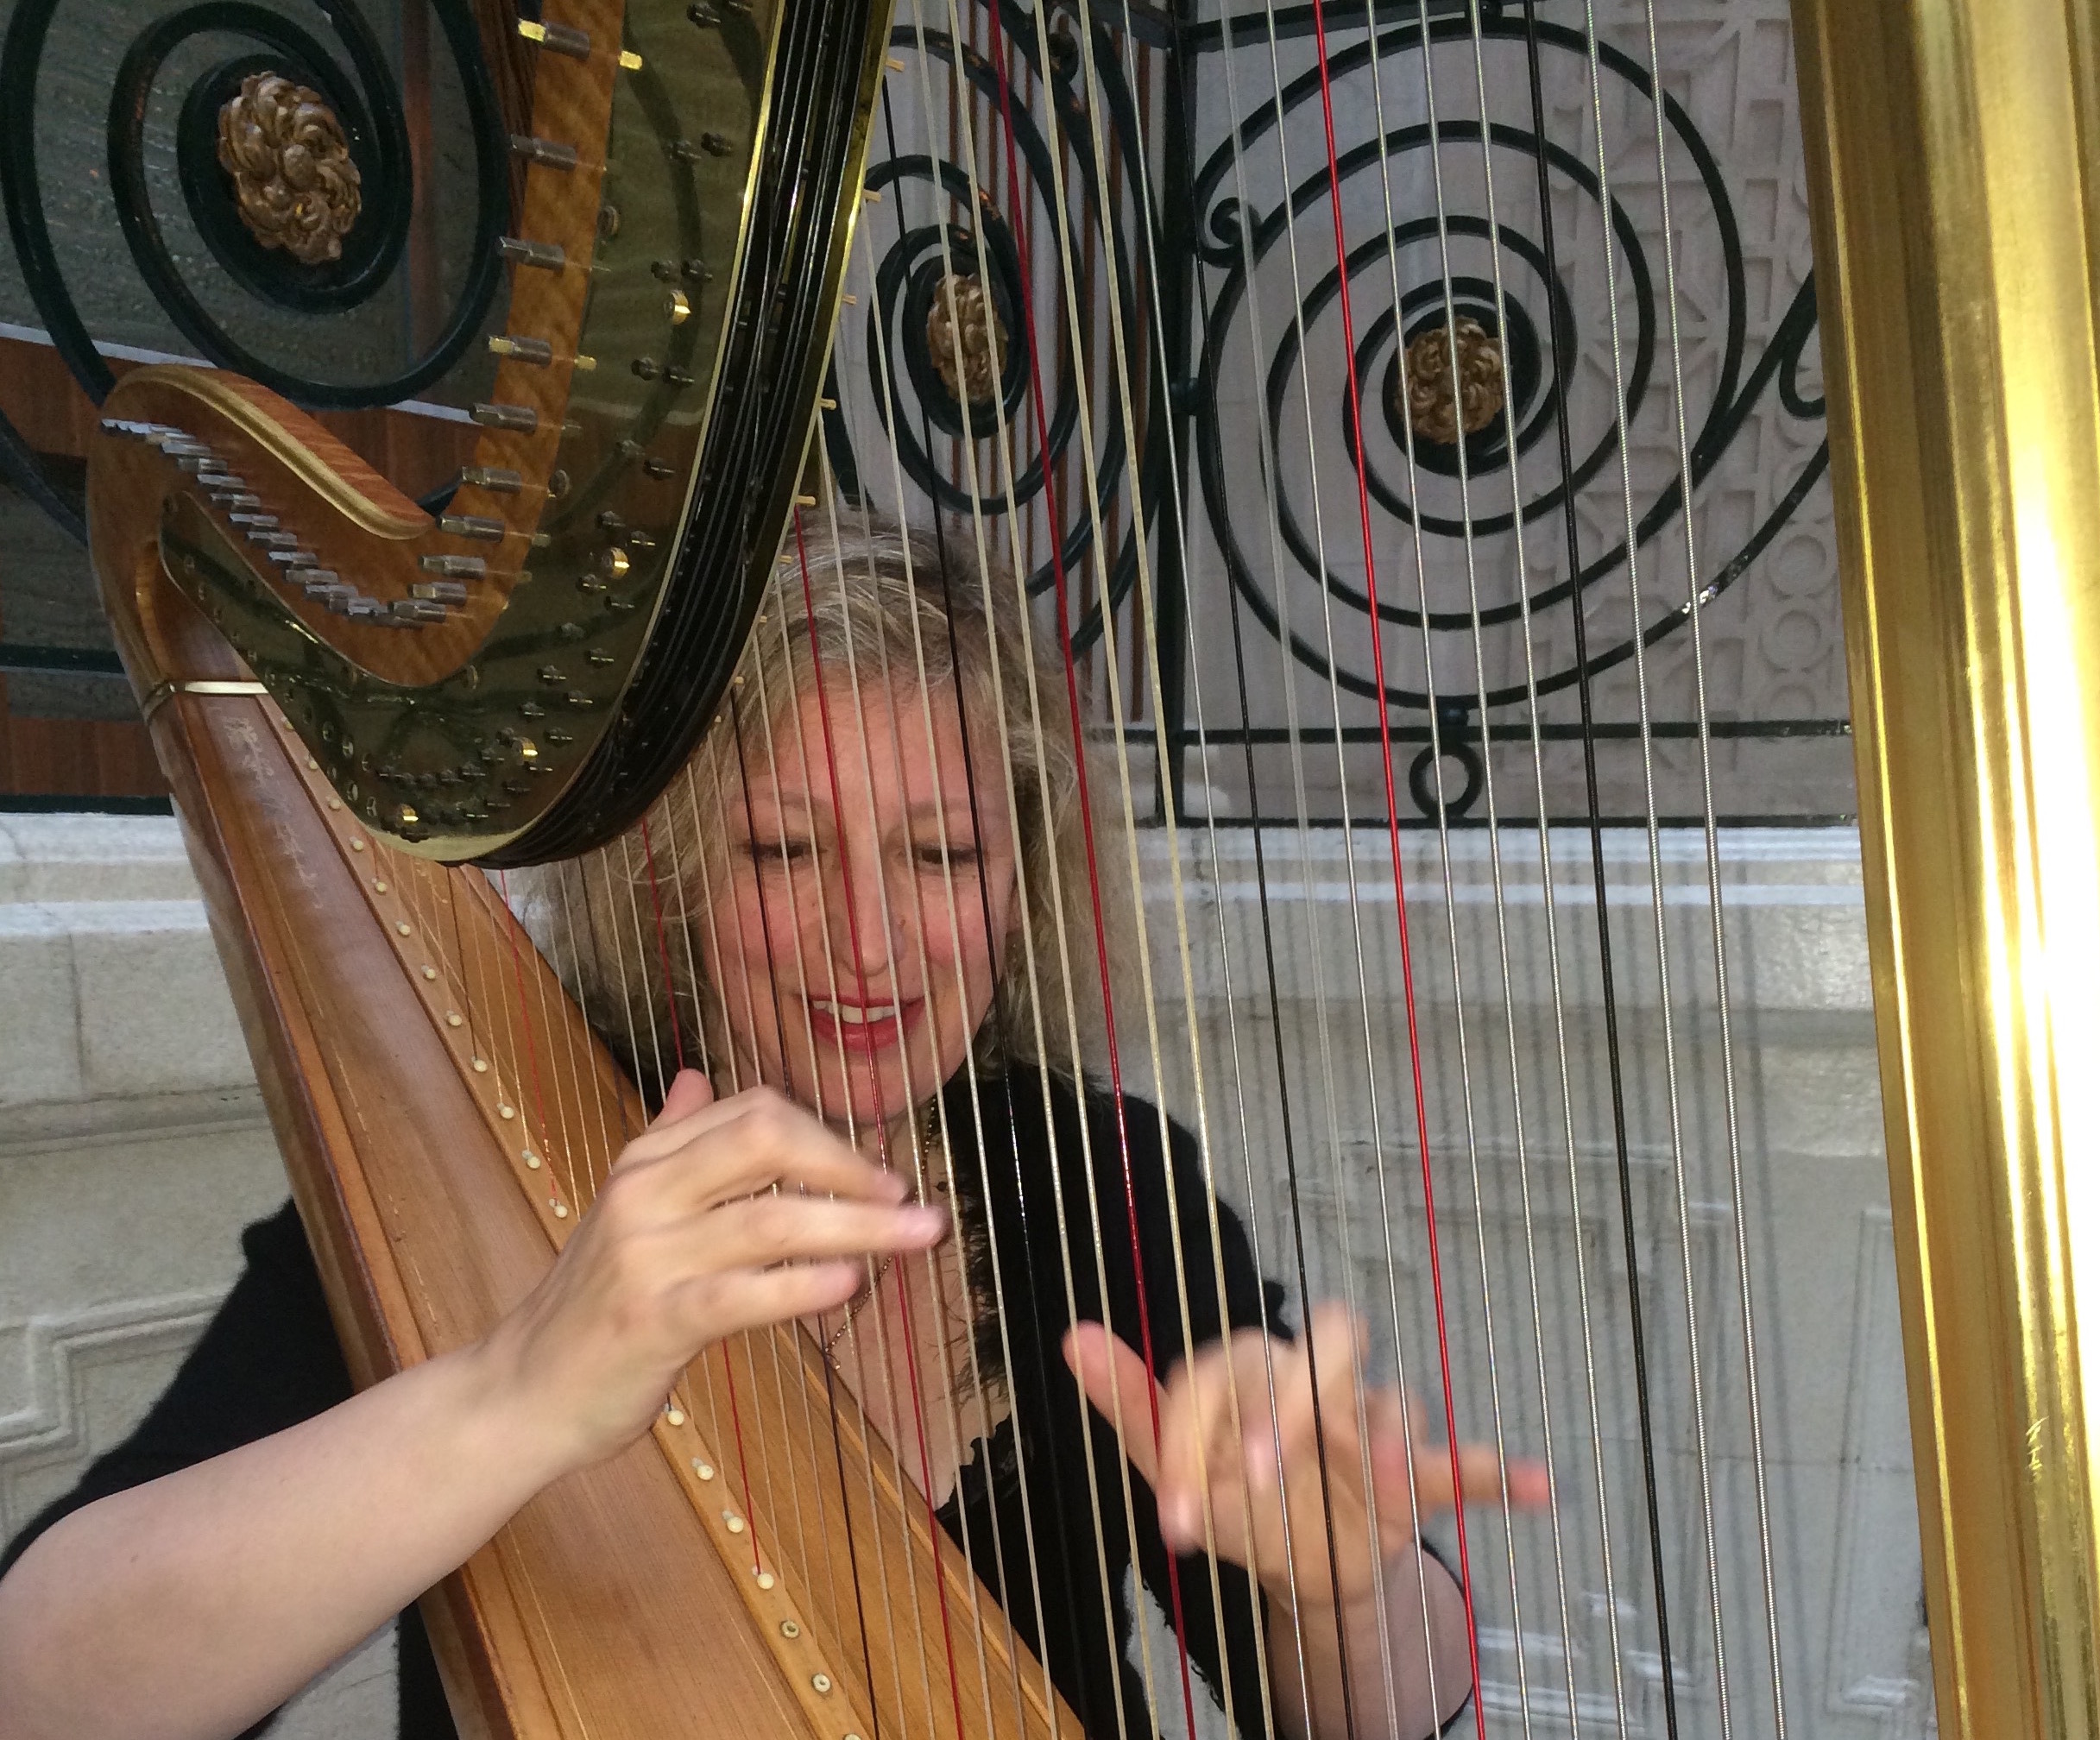 Writer and harpist Fiona Thompson playing the harp